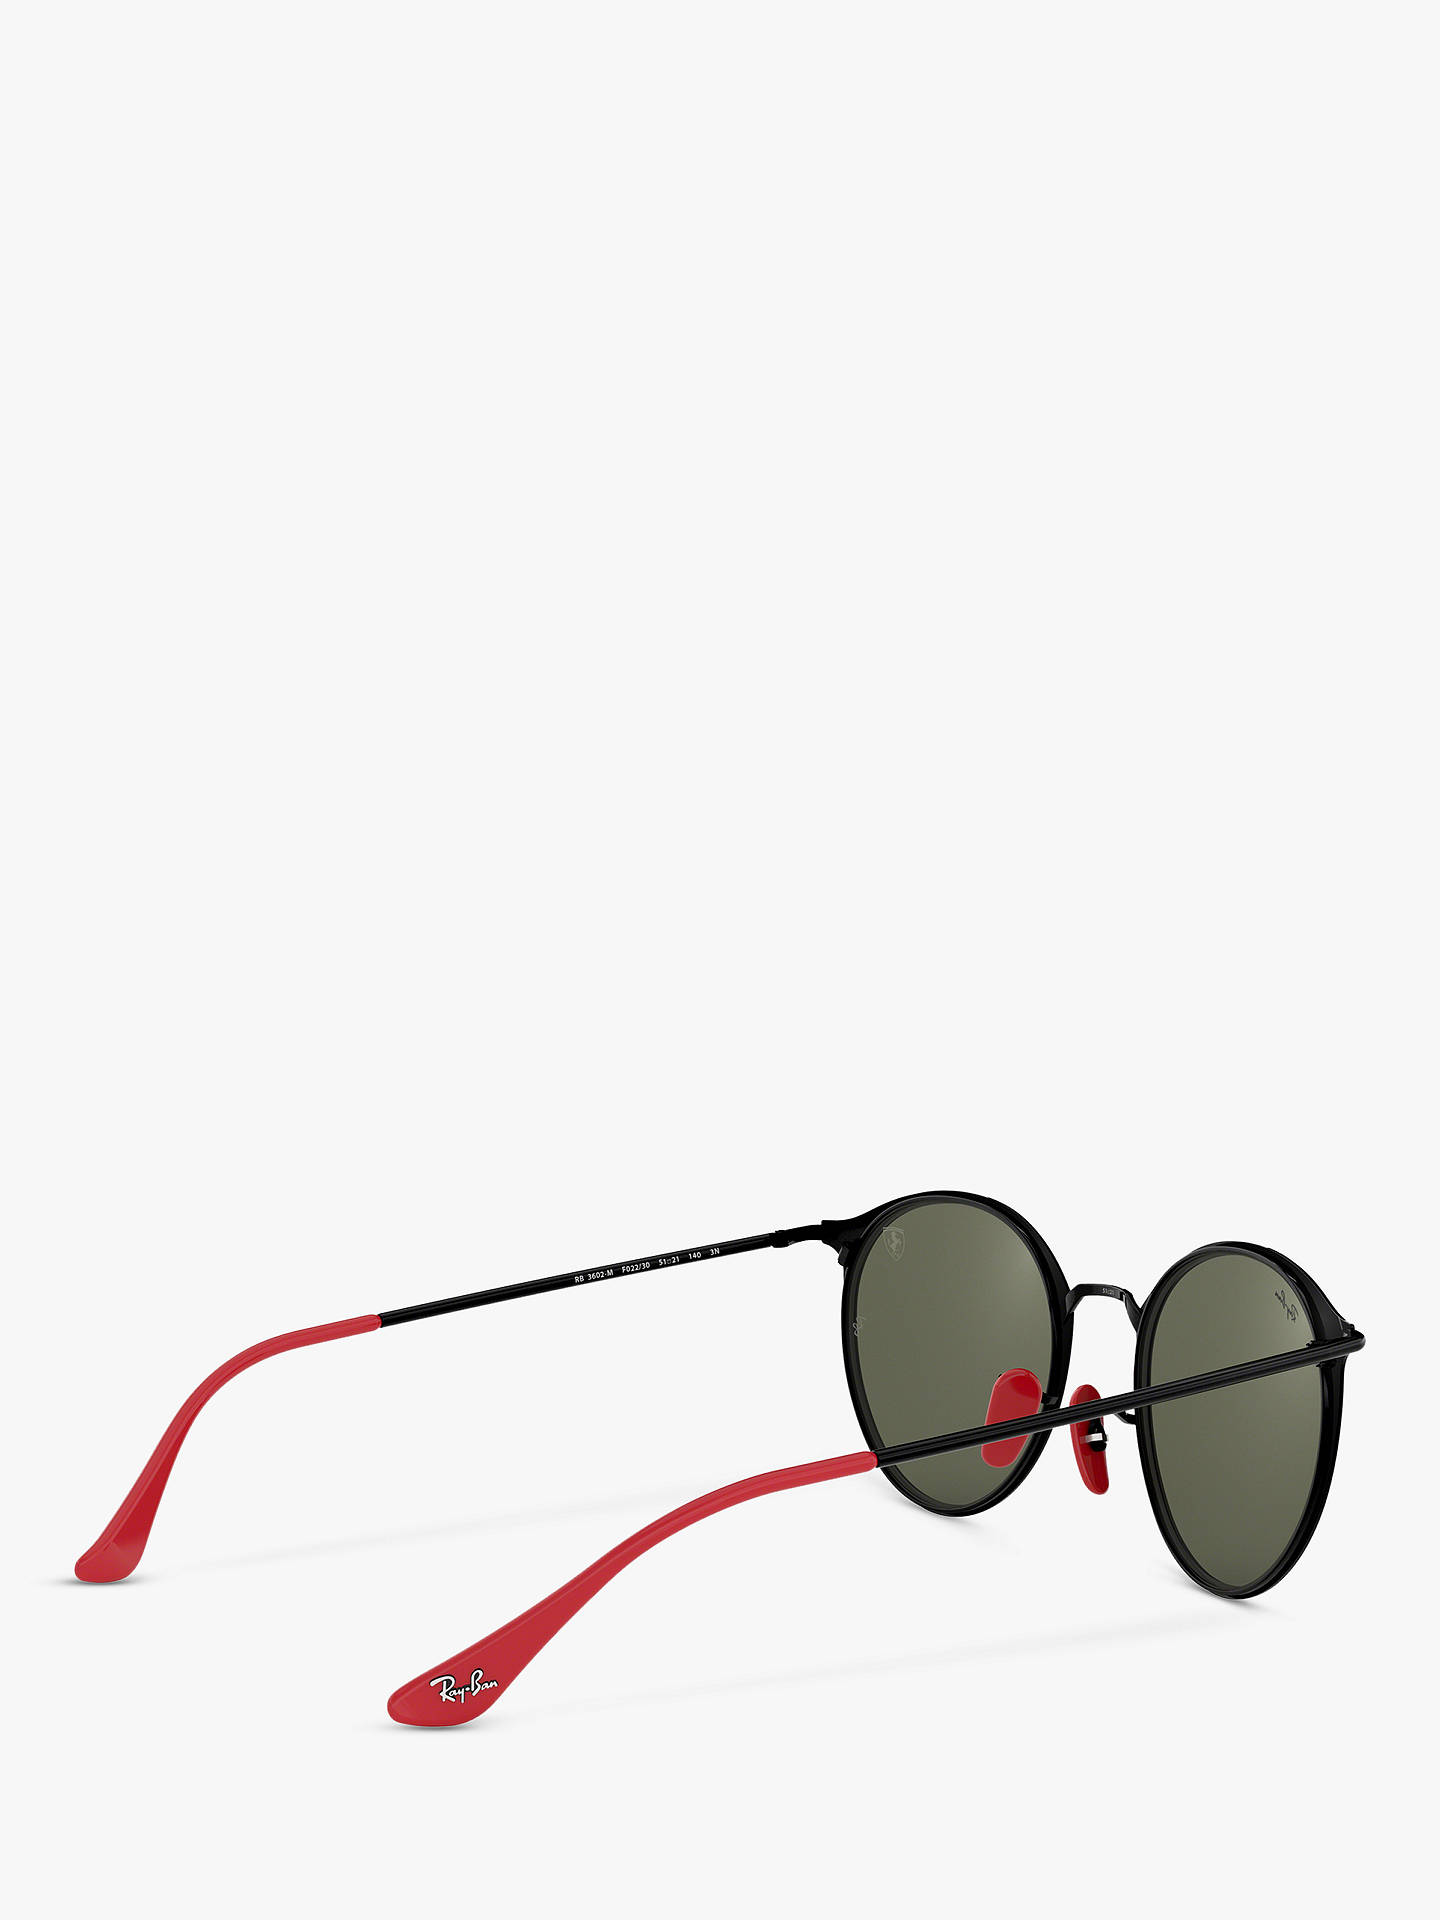 07a4f0bc43f88 ... Buy Ray-Ban Scuderia Ferrari Collection RB3574N Unisex Round Sunglasses